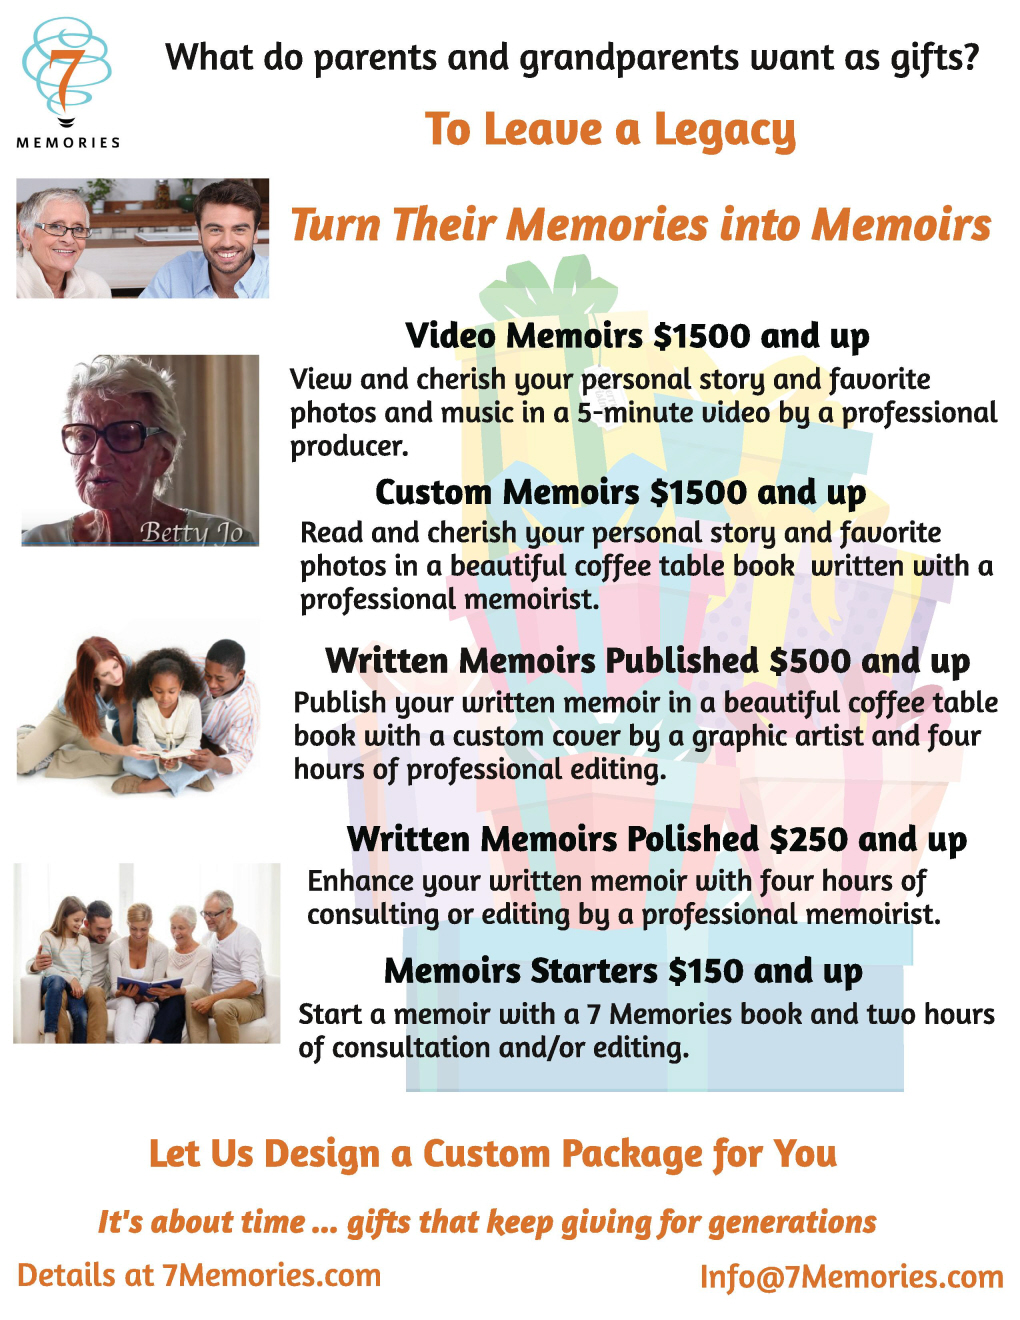 Unique gifts for parents and grandparentsleave a legacy create a legacy that will live forever write it yourself partner with a loved one or let 7 memories do it for you solutioingenieria Image collections